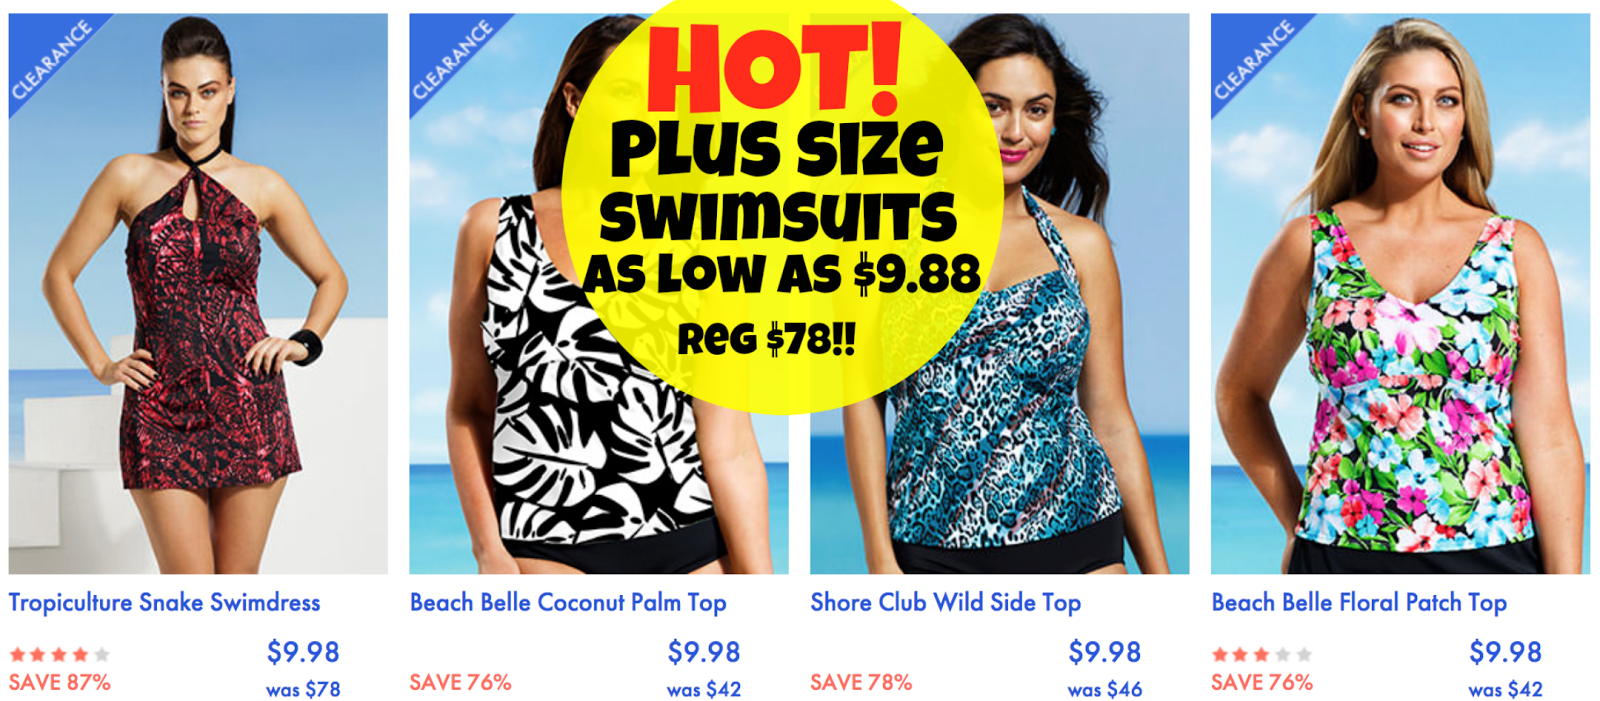 http://www.thebinderladies.com/2014/09/hot-swimsuitsforall-up-to-87-plus-size.html#.VBnhqEvdtbw